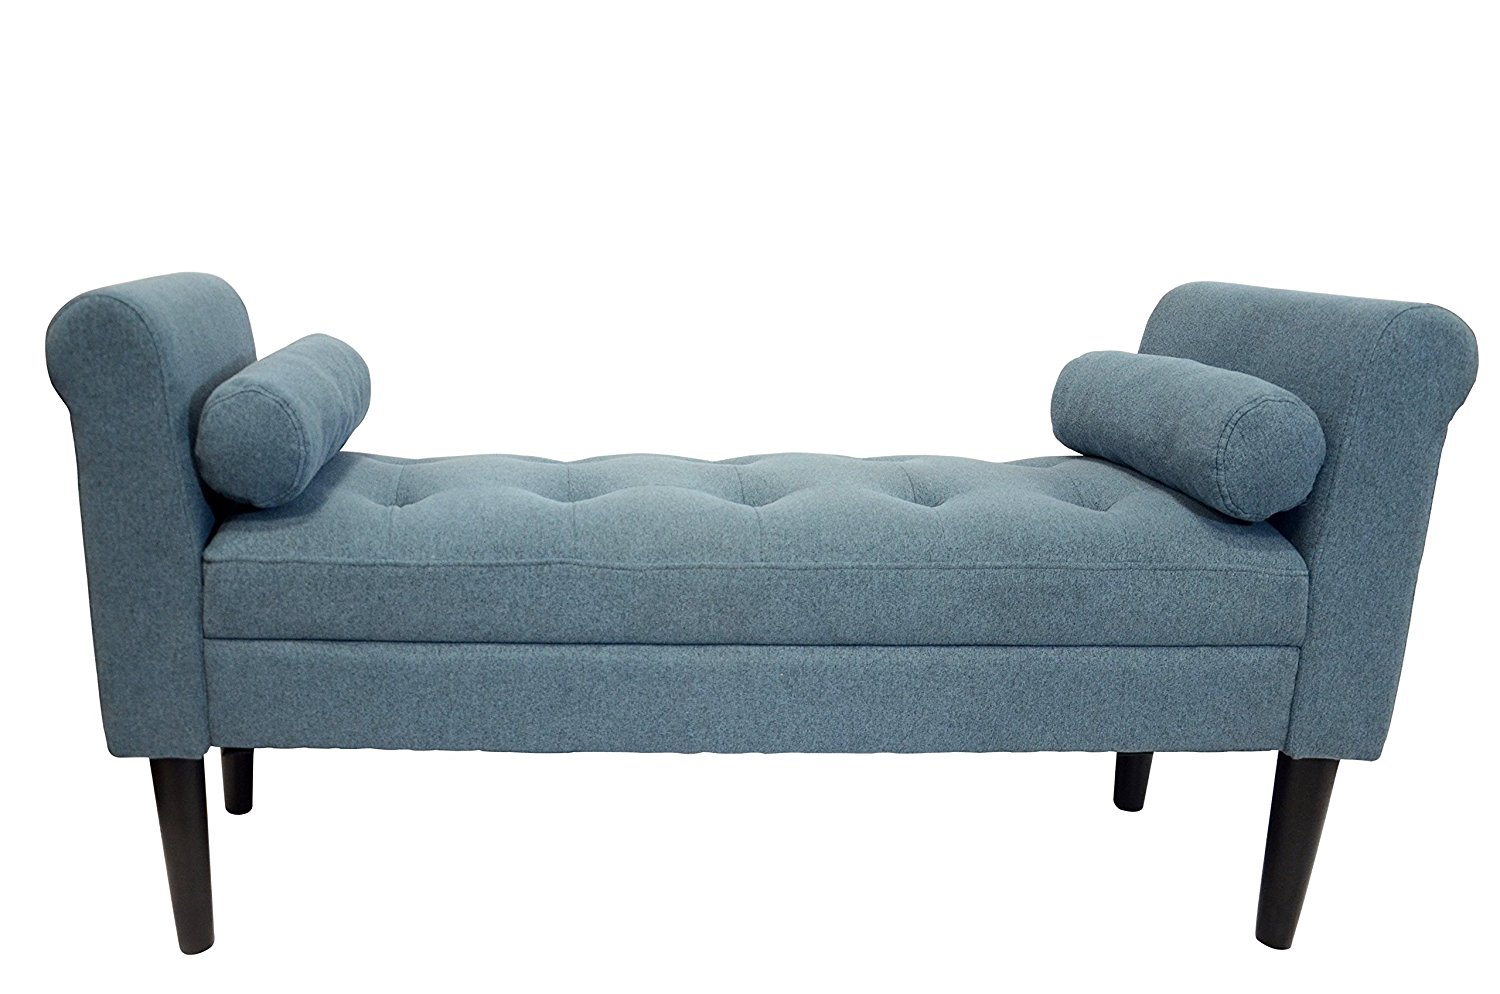 serene decor bedroom bench with rolled arms sapphire blue walmart com